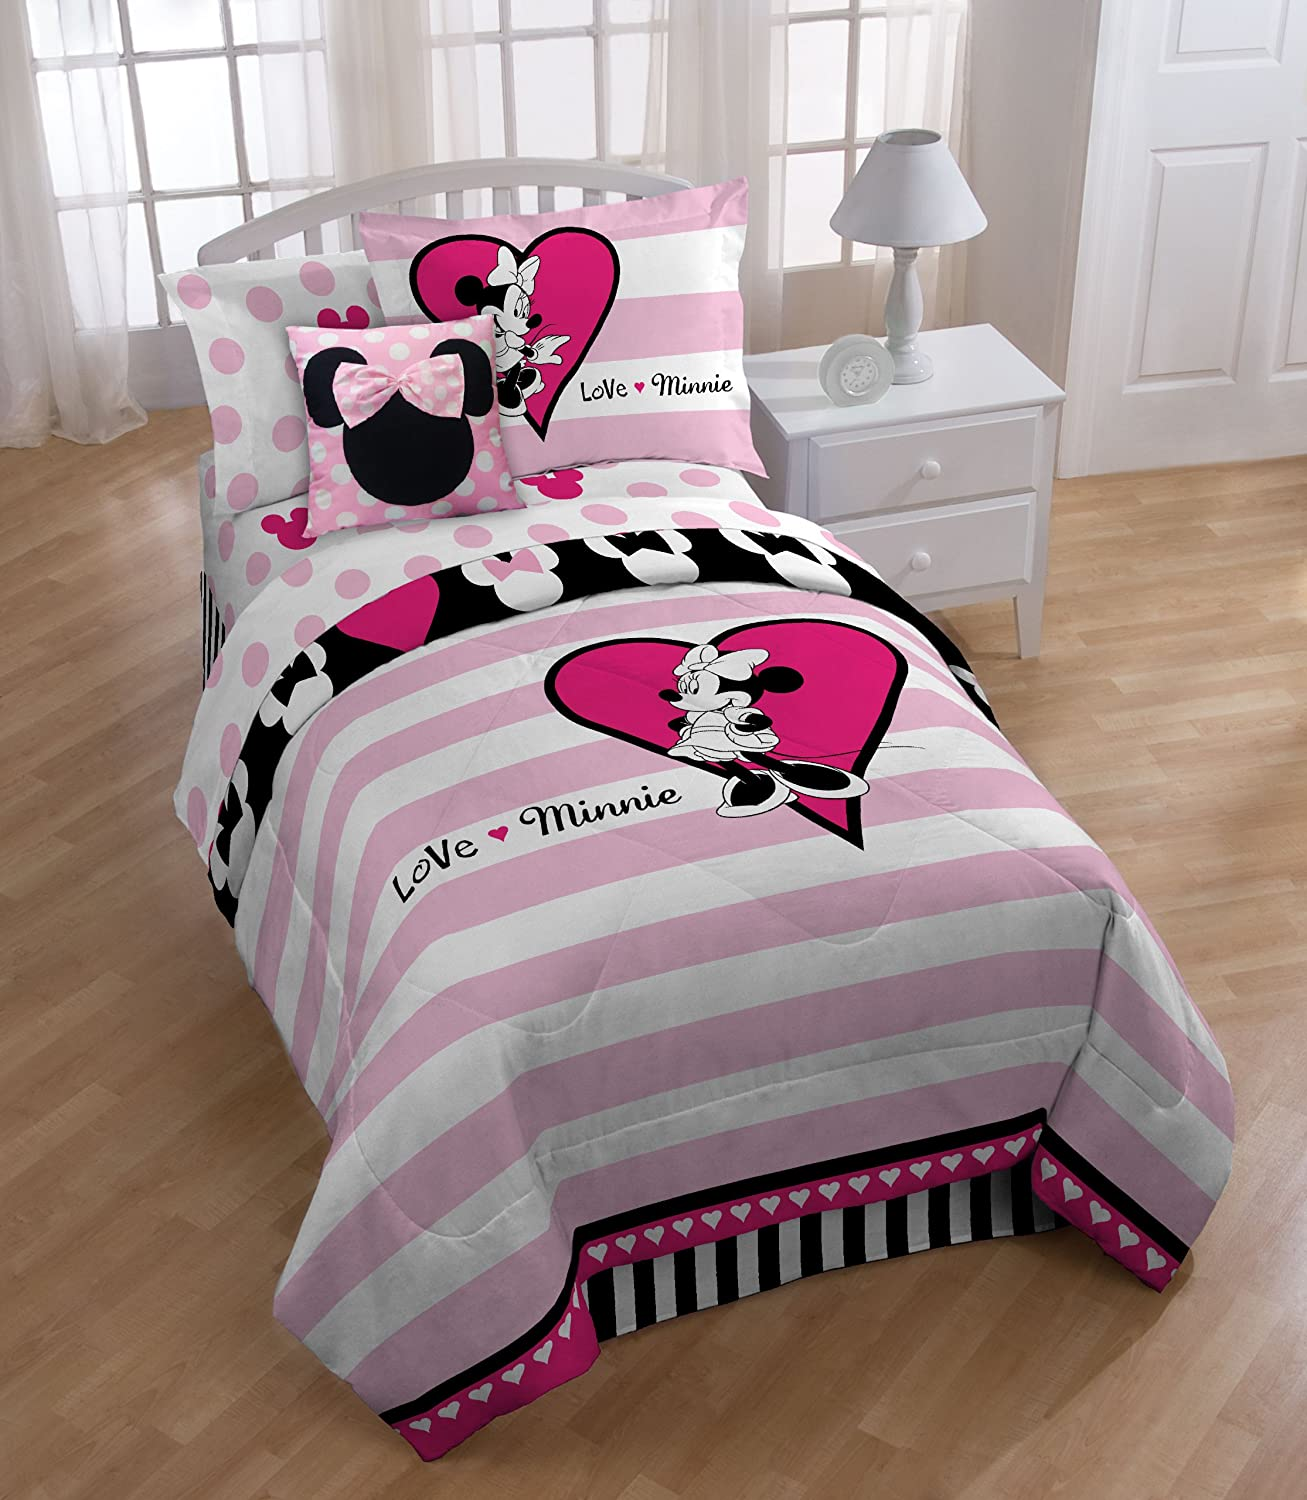 minnie mouse bedding totally kids totally bedrooms kids bedroom